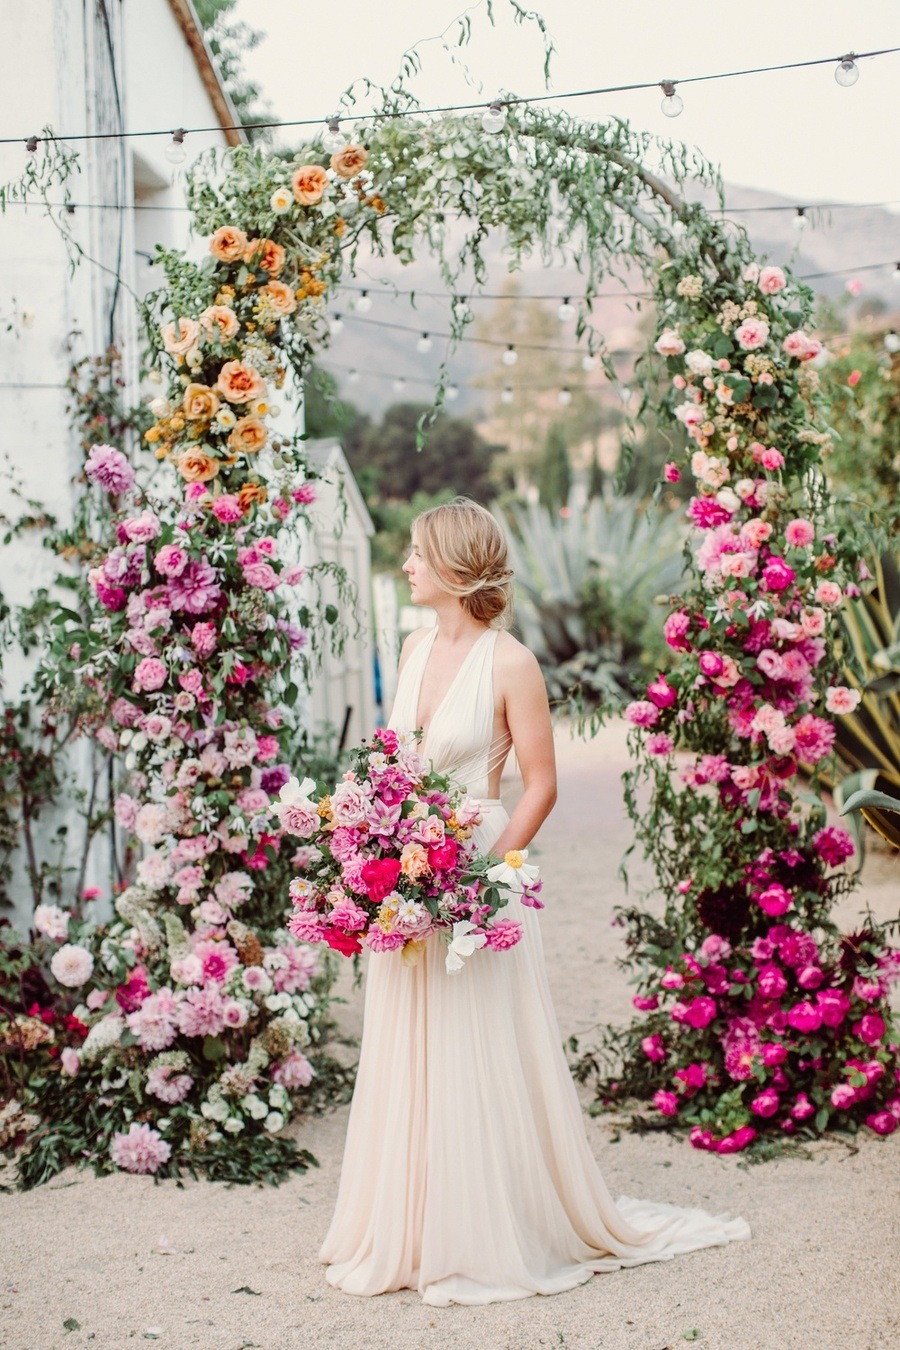 Cheerful Wedding Ombre Flower Arch 01